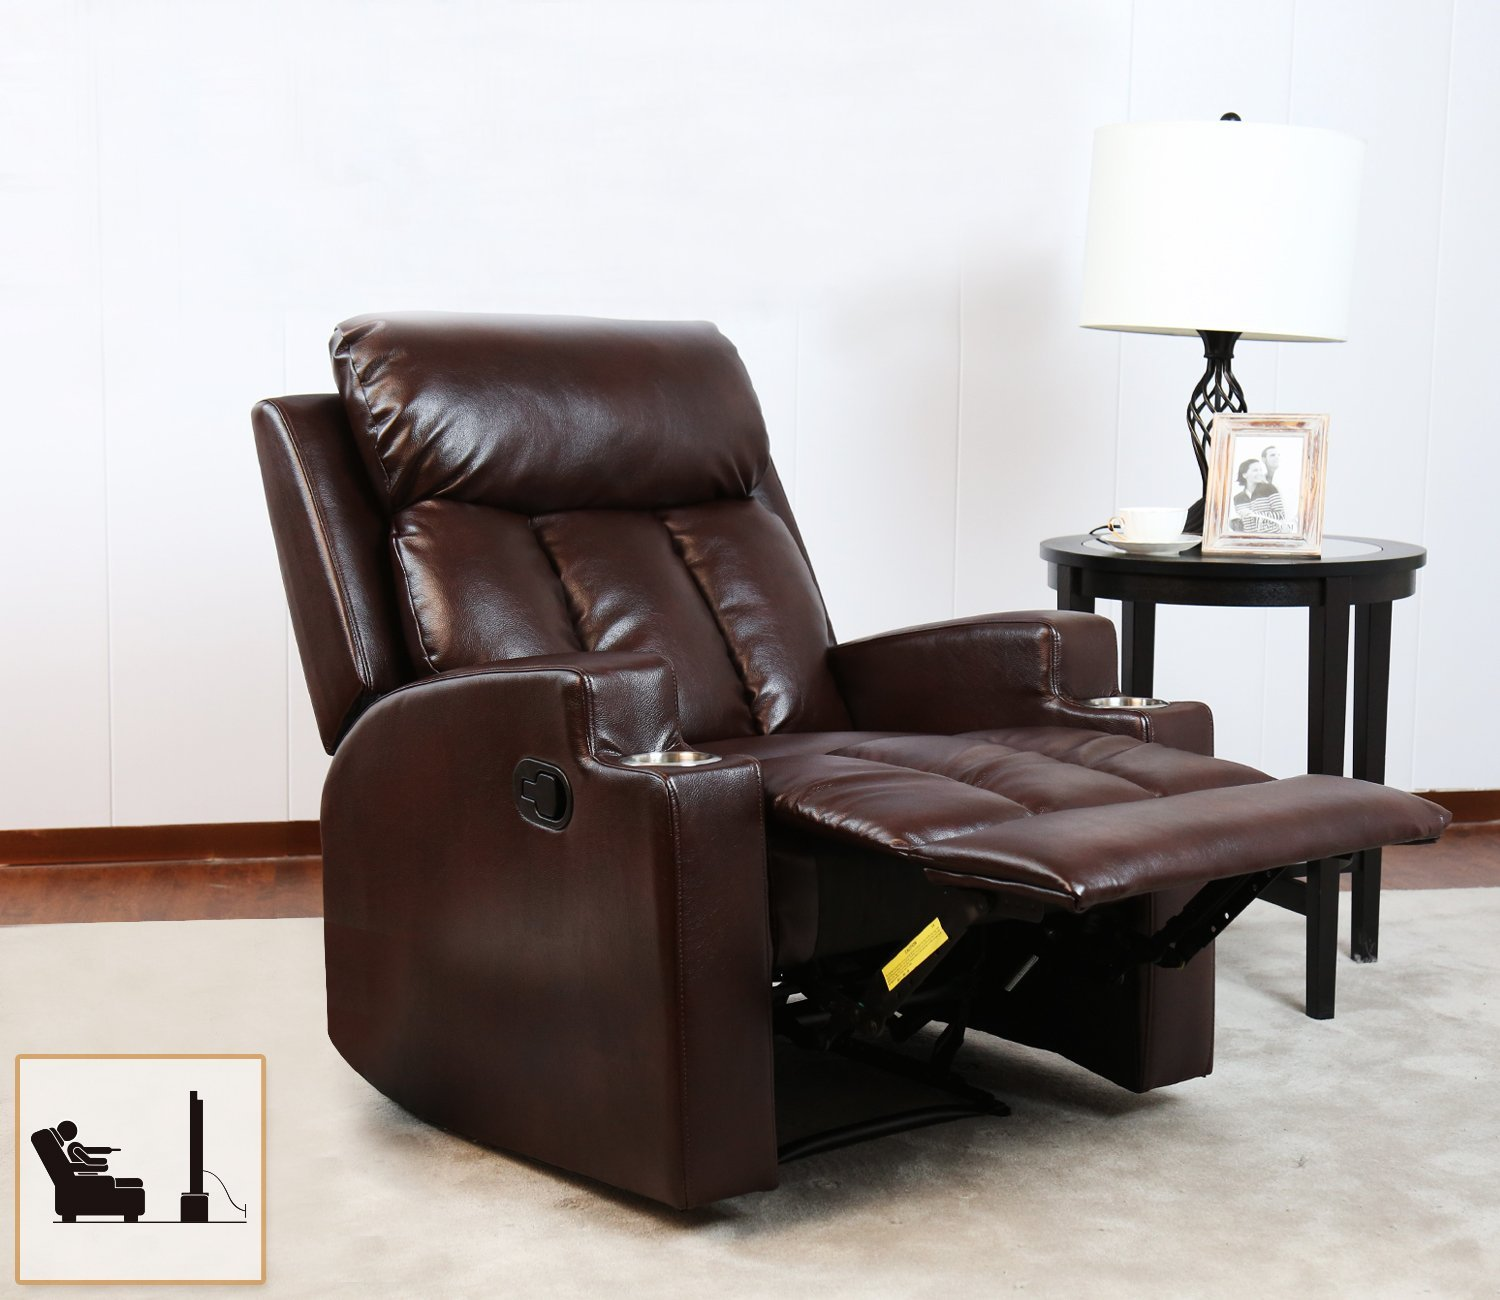 BONZY Recliner Chair Contemporary Theater Seating two Cup Holder Brown Leather Chairs for Modern Living room Durable... by BONZY